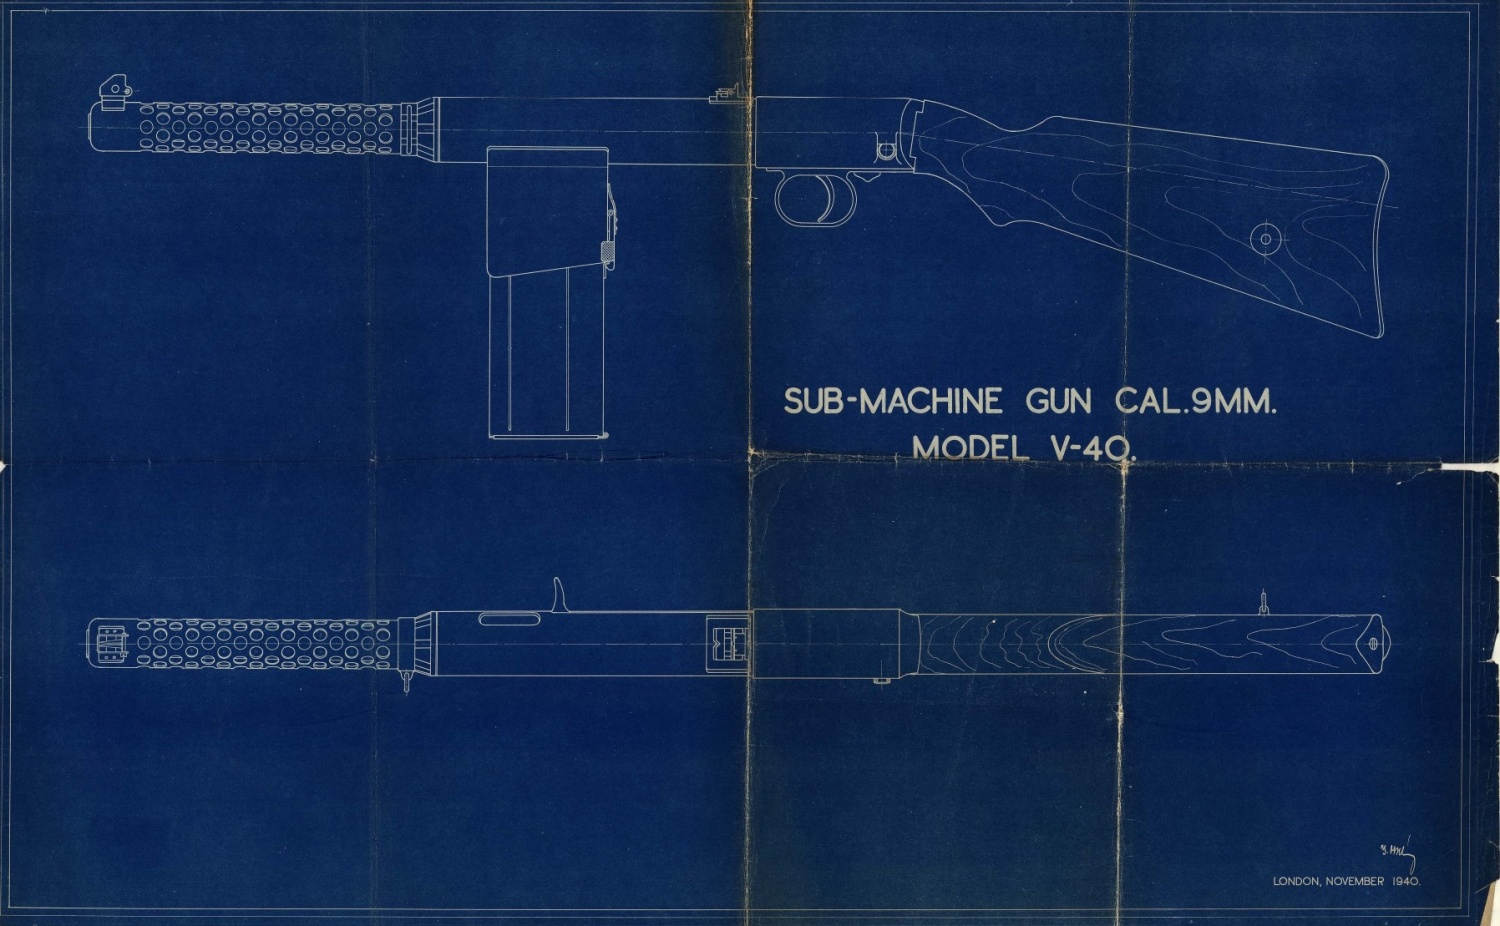 Weird magazines vol v the vesely submachine guns the firearm the vesely v 40 blueprint primary plate image source the vesely v 40 blueprint available in the small arms review archive courtesy of the royal malvernweather Image collections